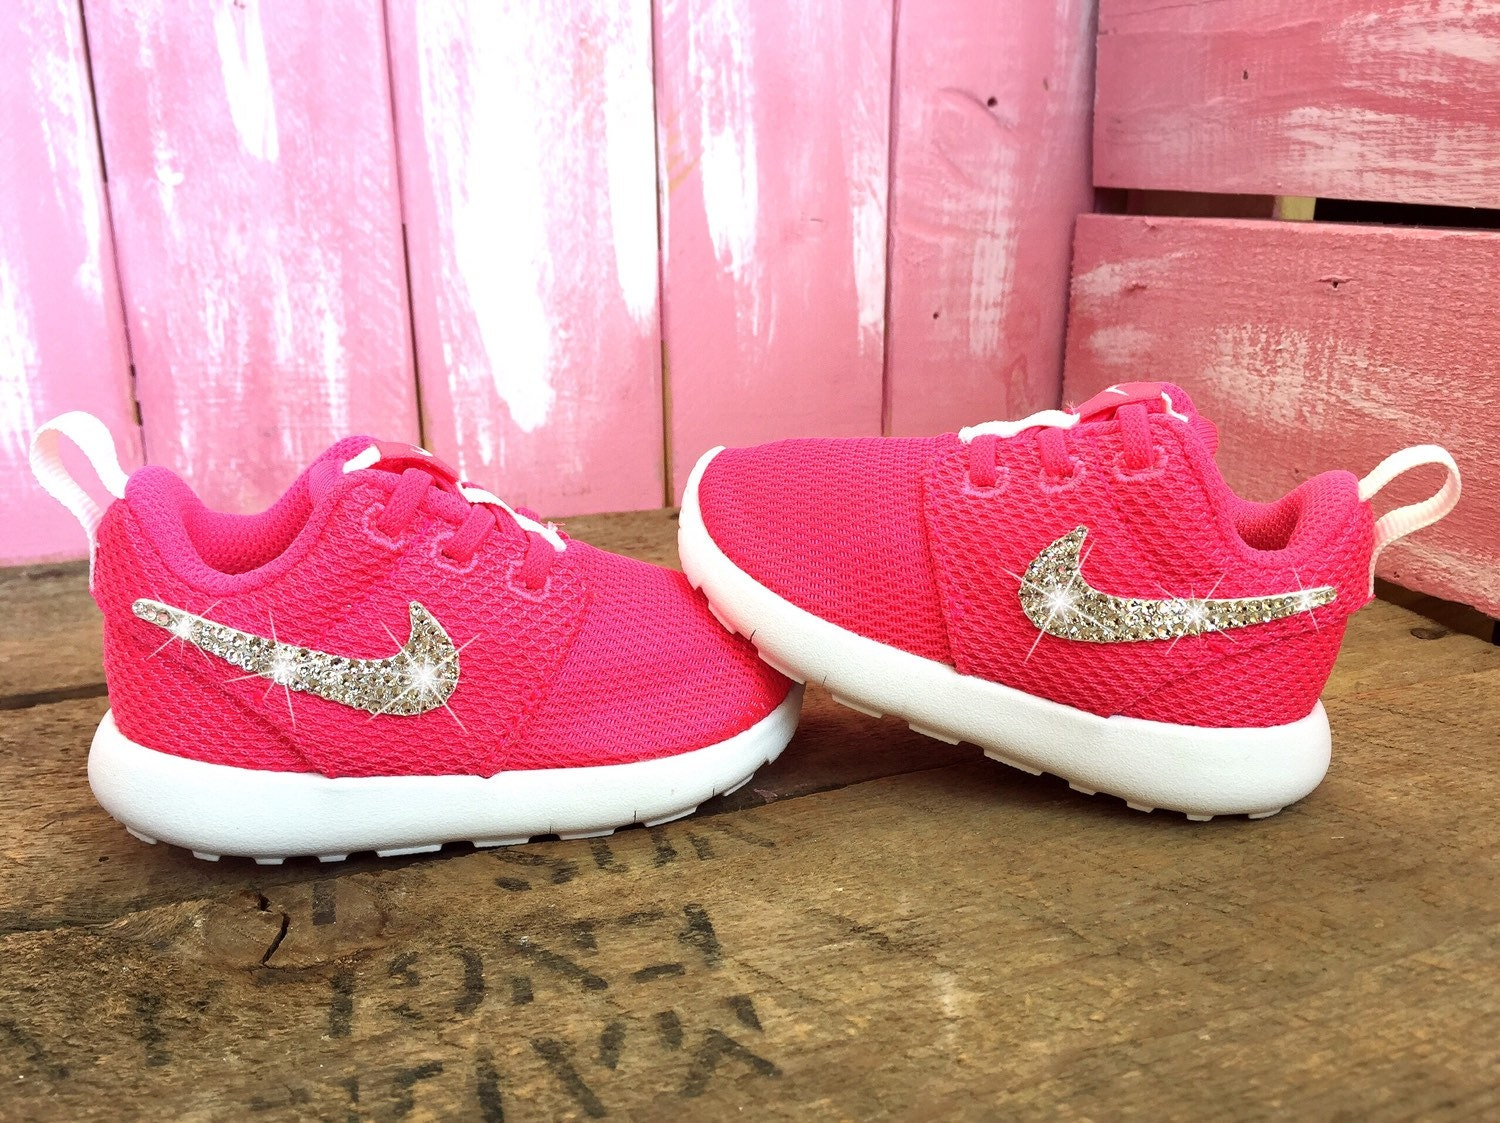 ... buy online 9a31e 8f0ea Blinged Pink Toddler Nike Roshe One Customized  With Swarovski Crystal Rhinestones Bling ... 508d0aa507